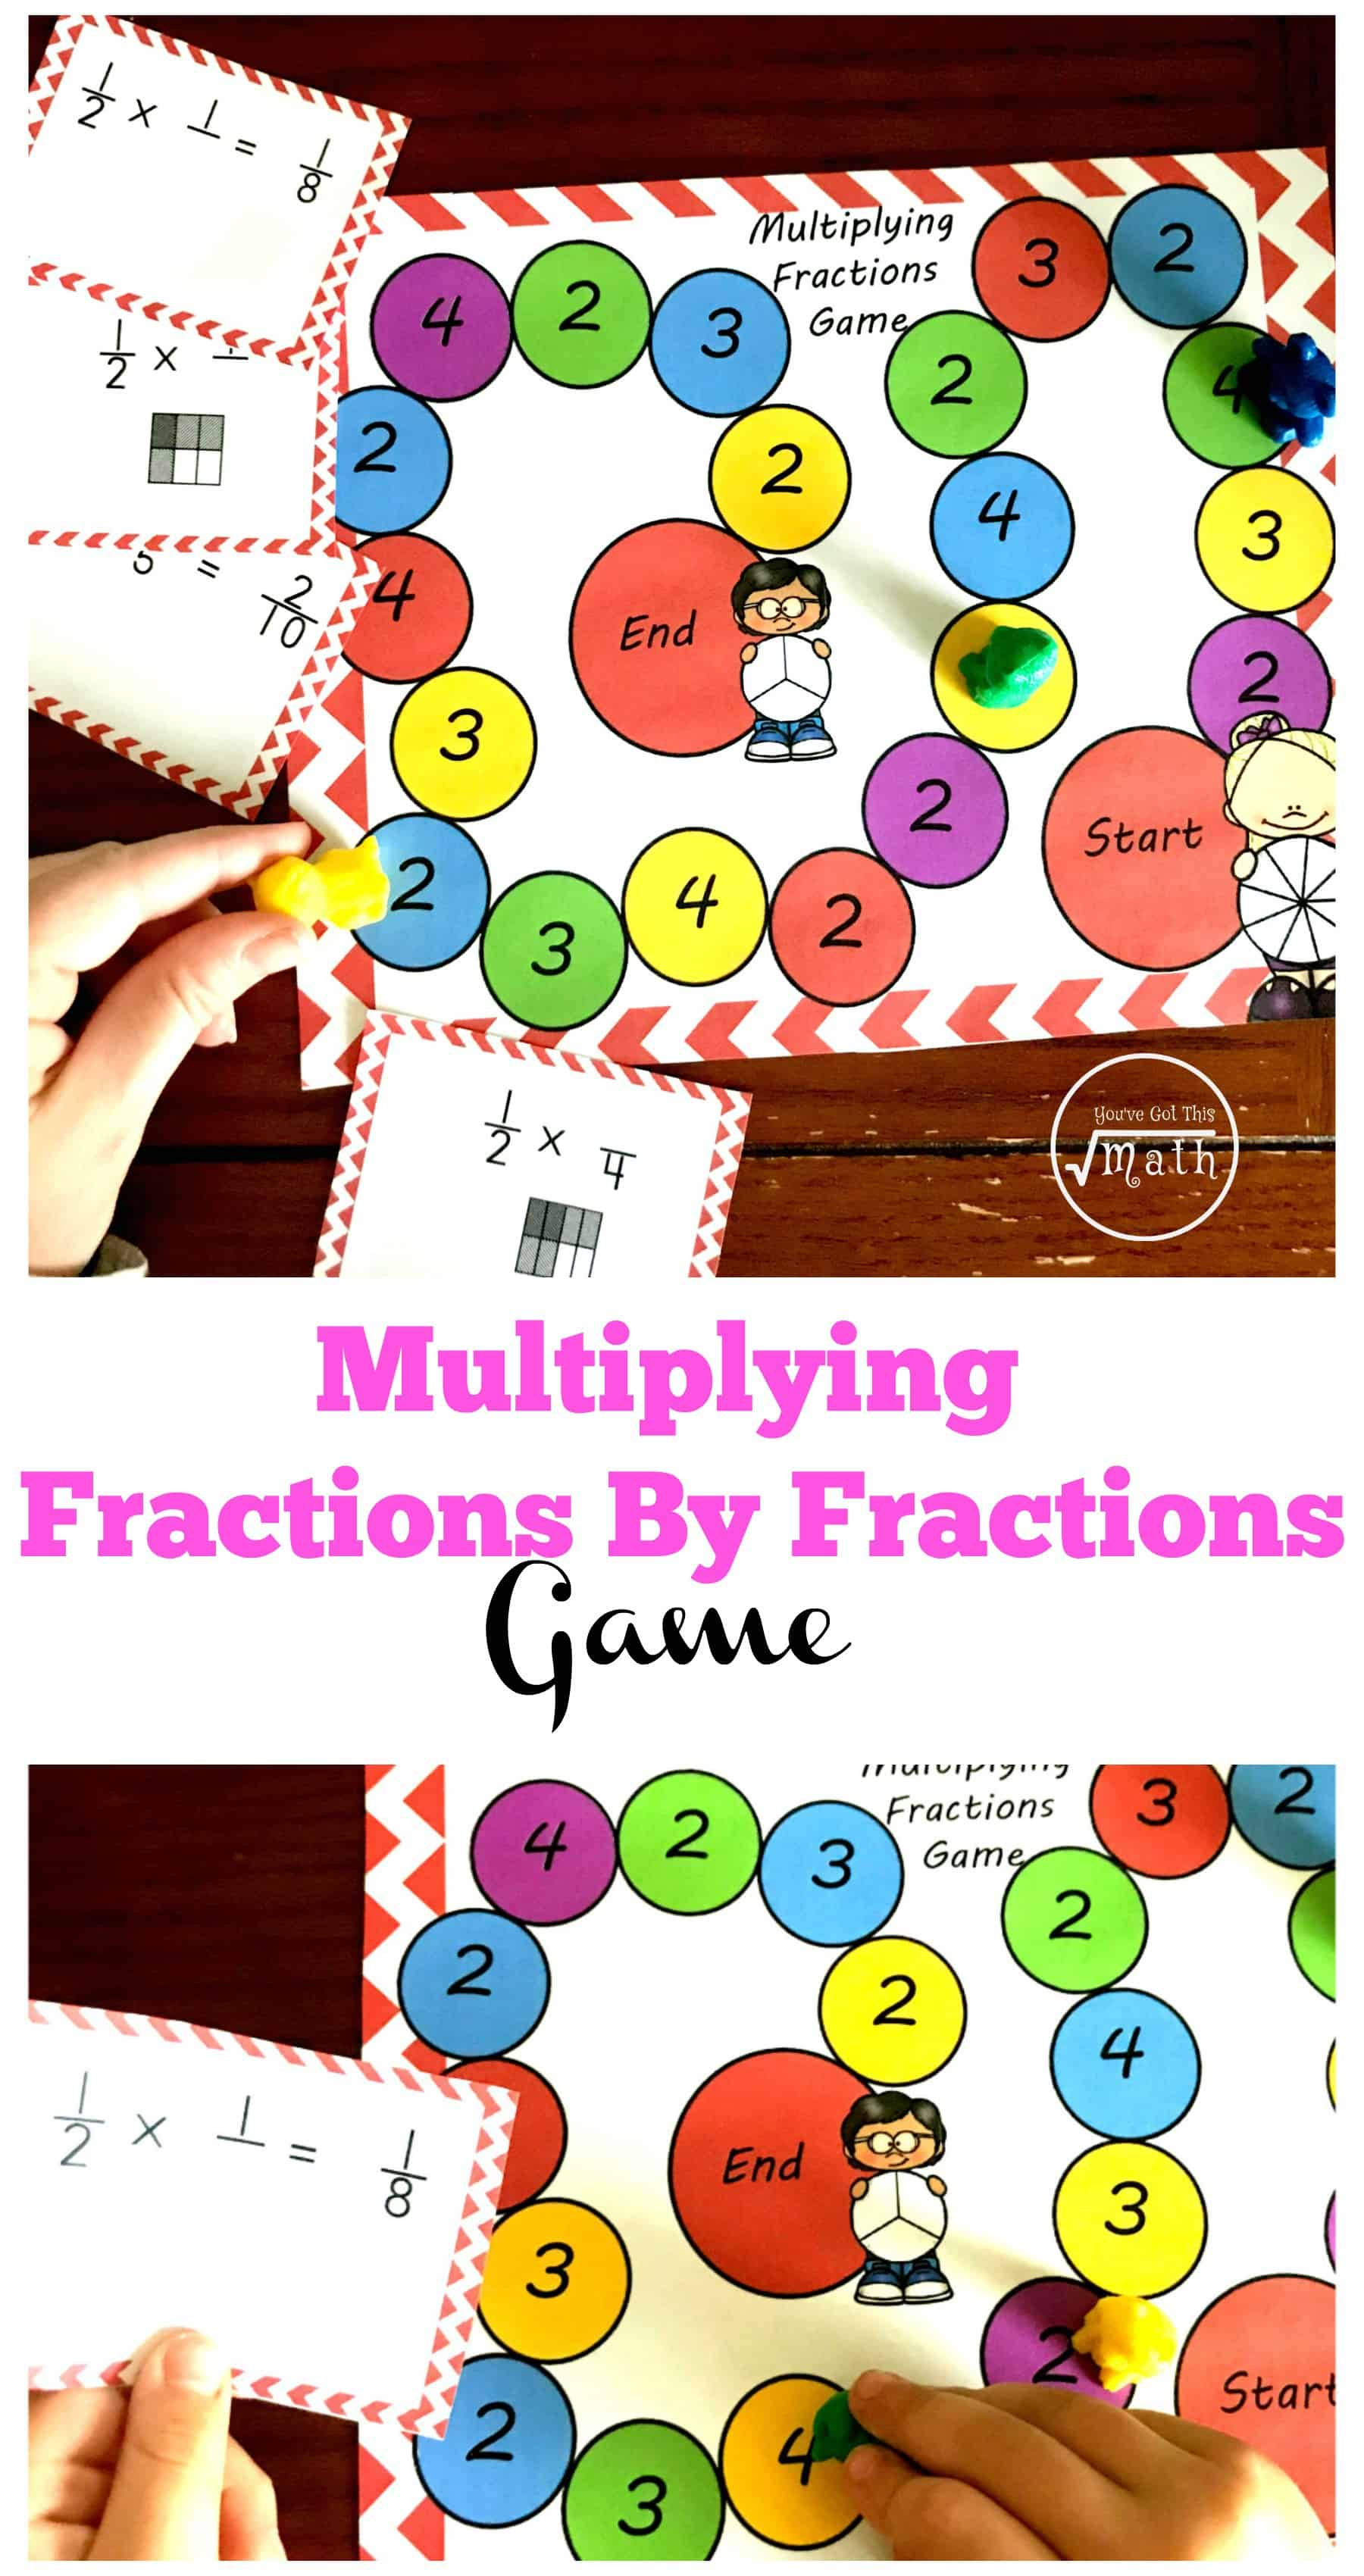 This FREE printable fraction game is a great way to practice solving fractions by fraction multiplication problems. There are simple expressions to solve, and there are some problems that require students to solve using an area model.